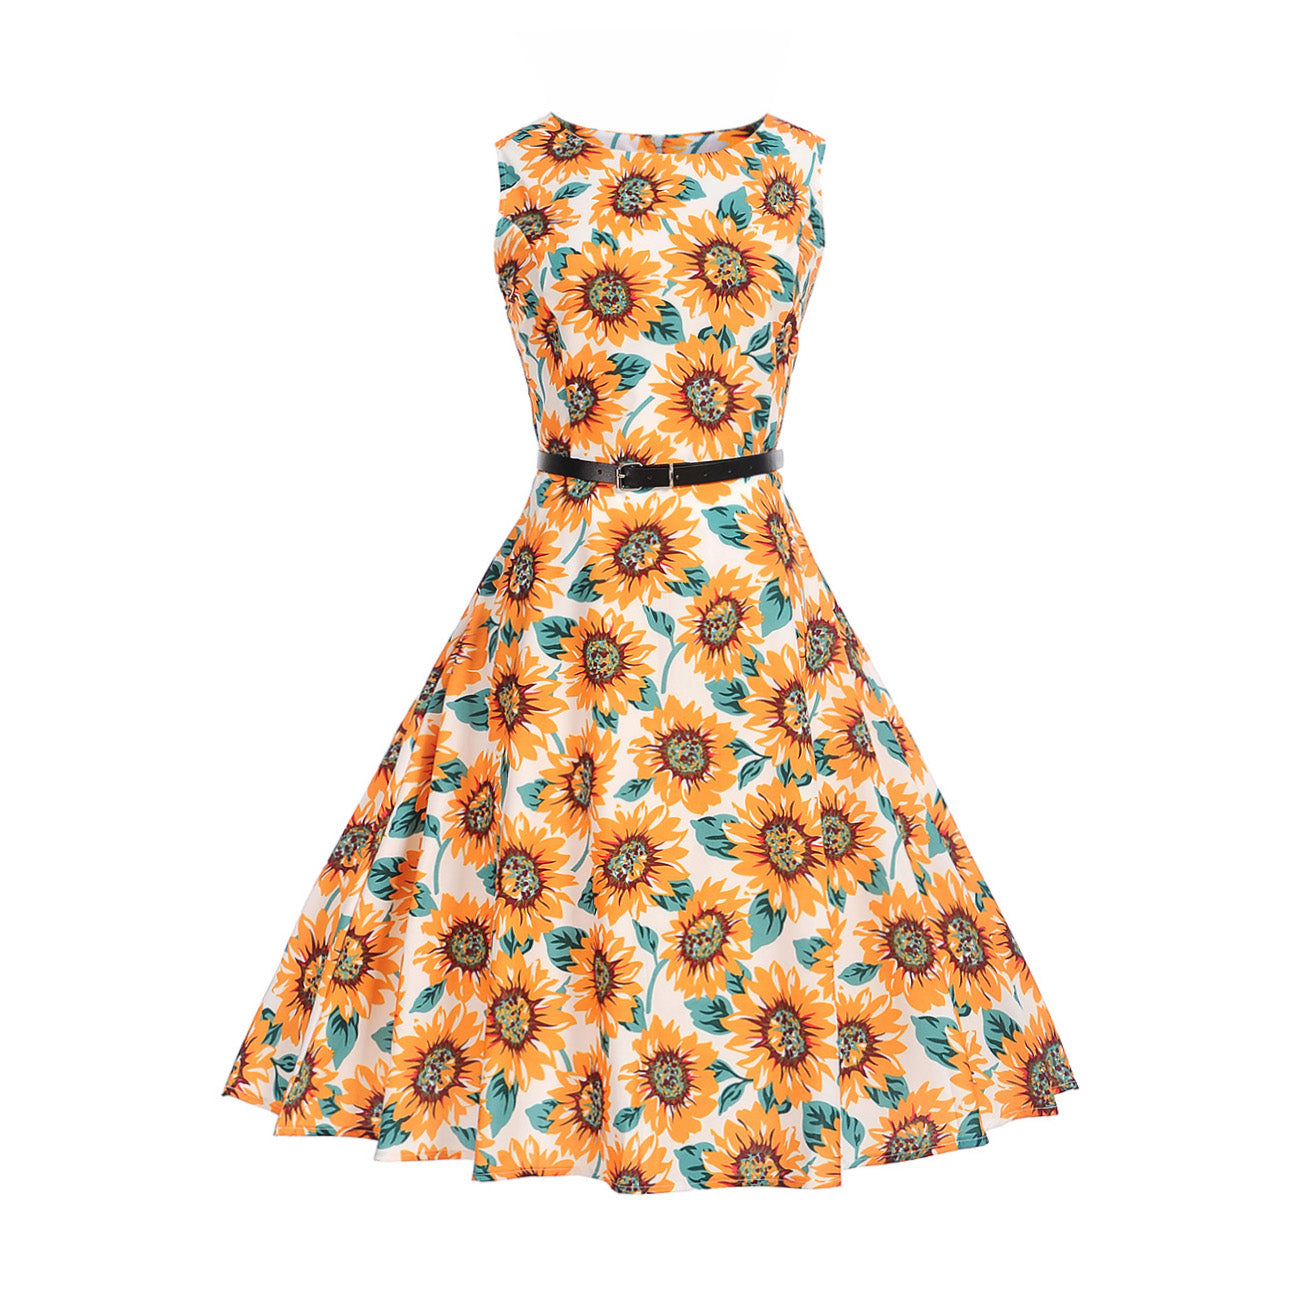 Vintage Style Floral Rockabilly Dress with Belt